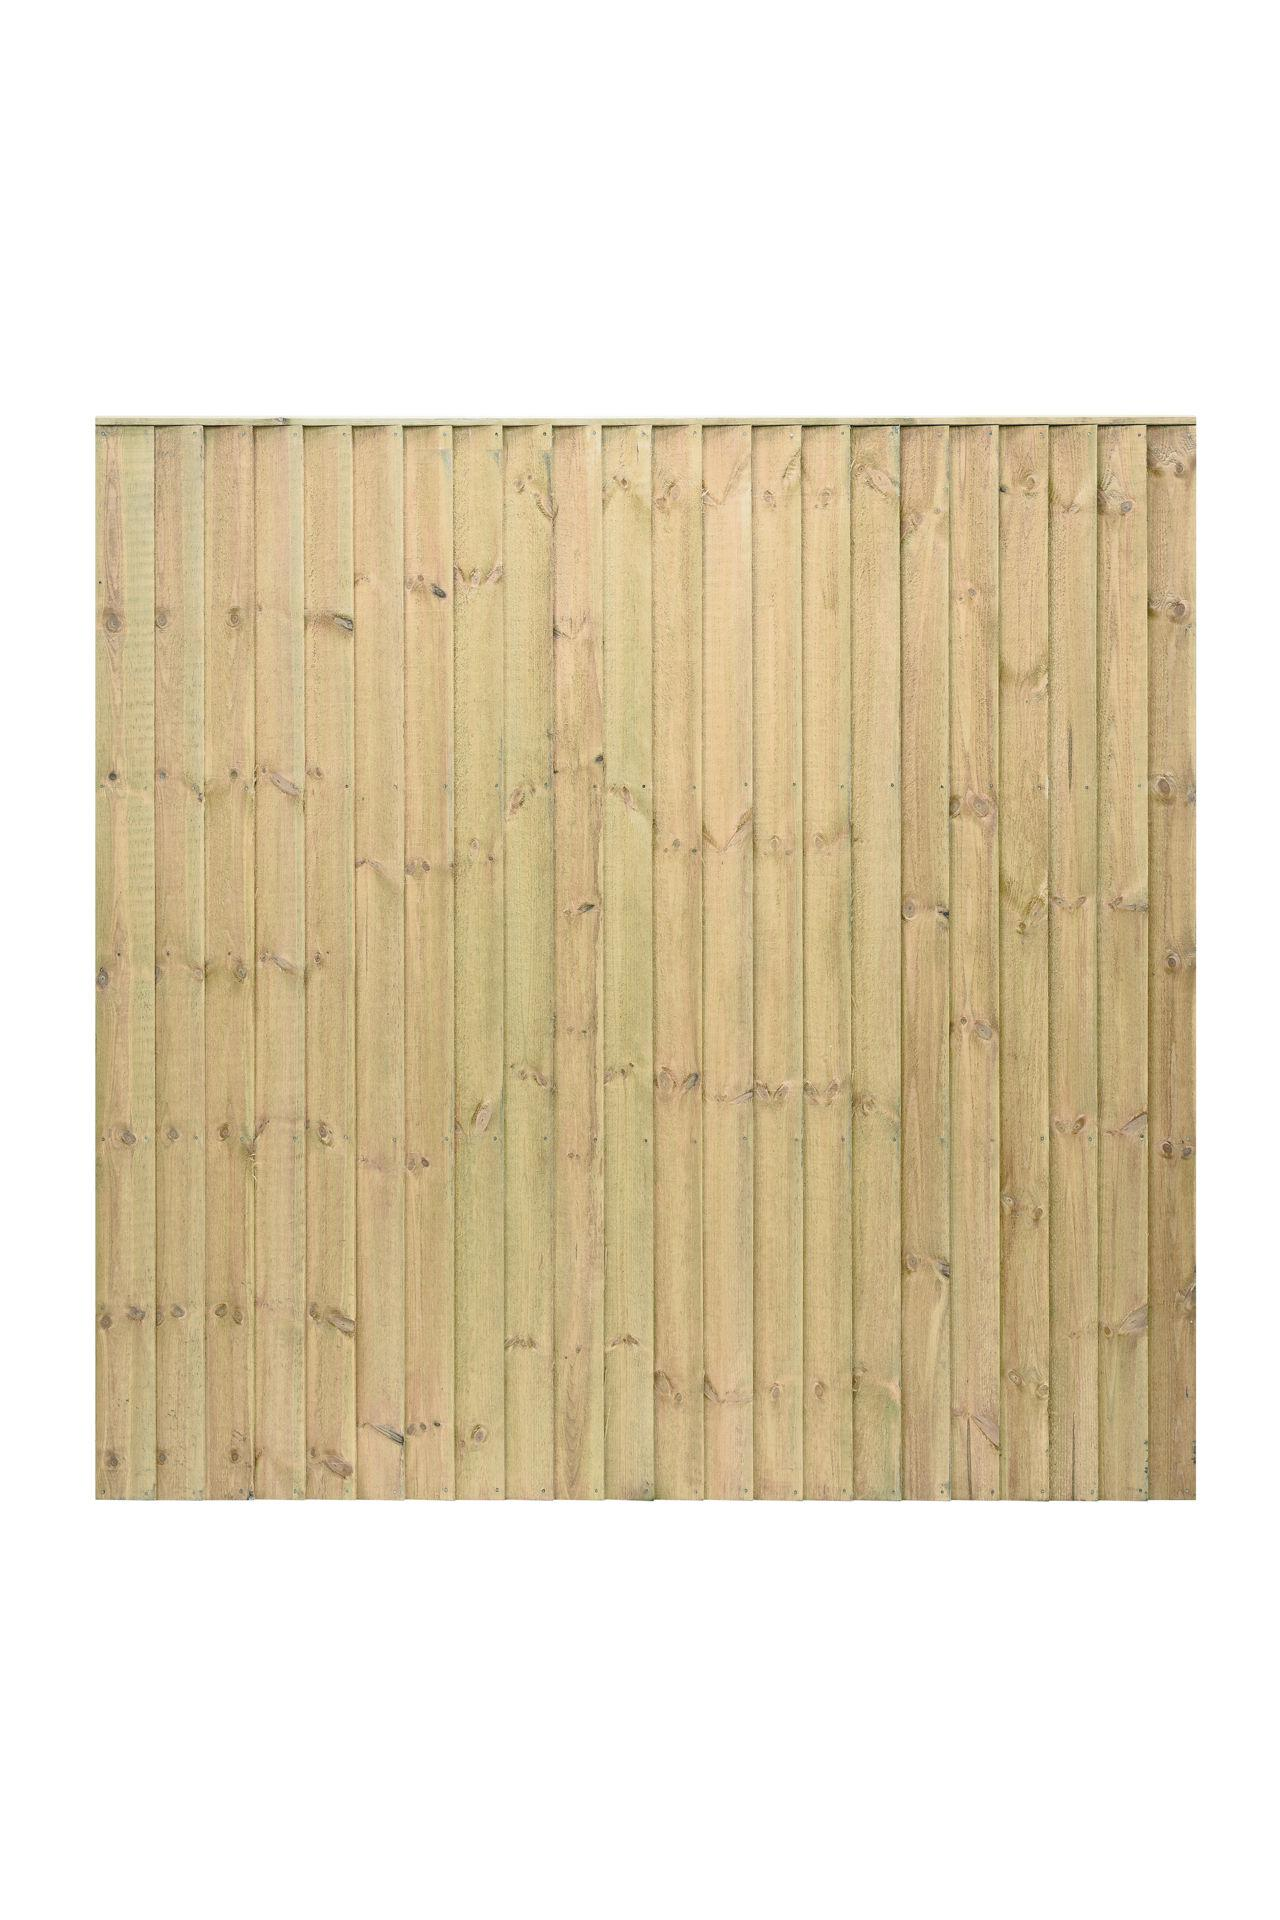 Standard GREEN Featheredge Wood Fence Panel